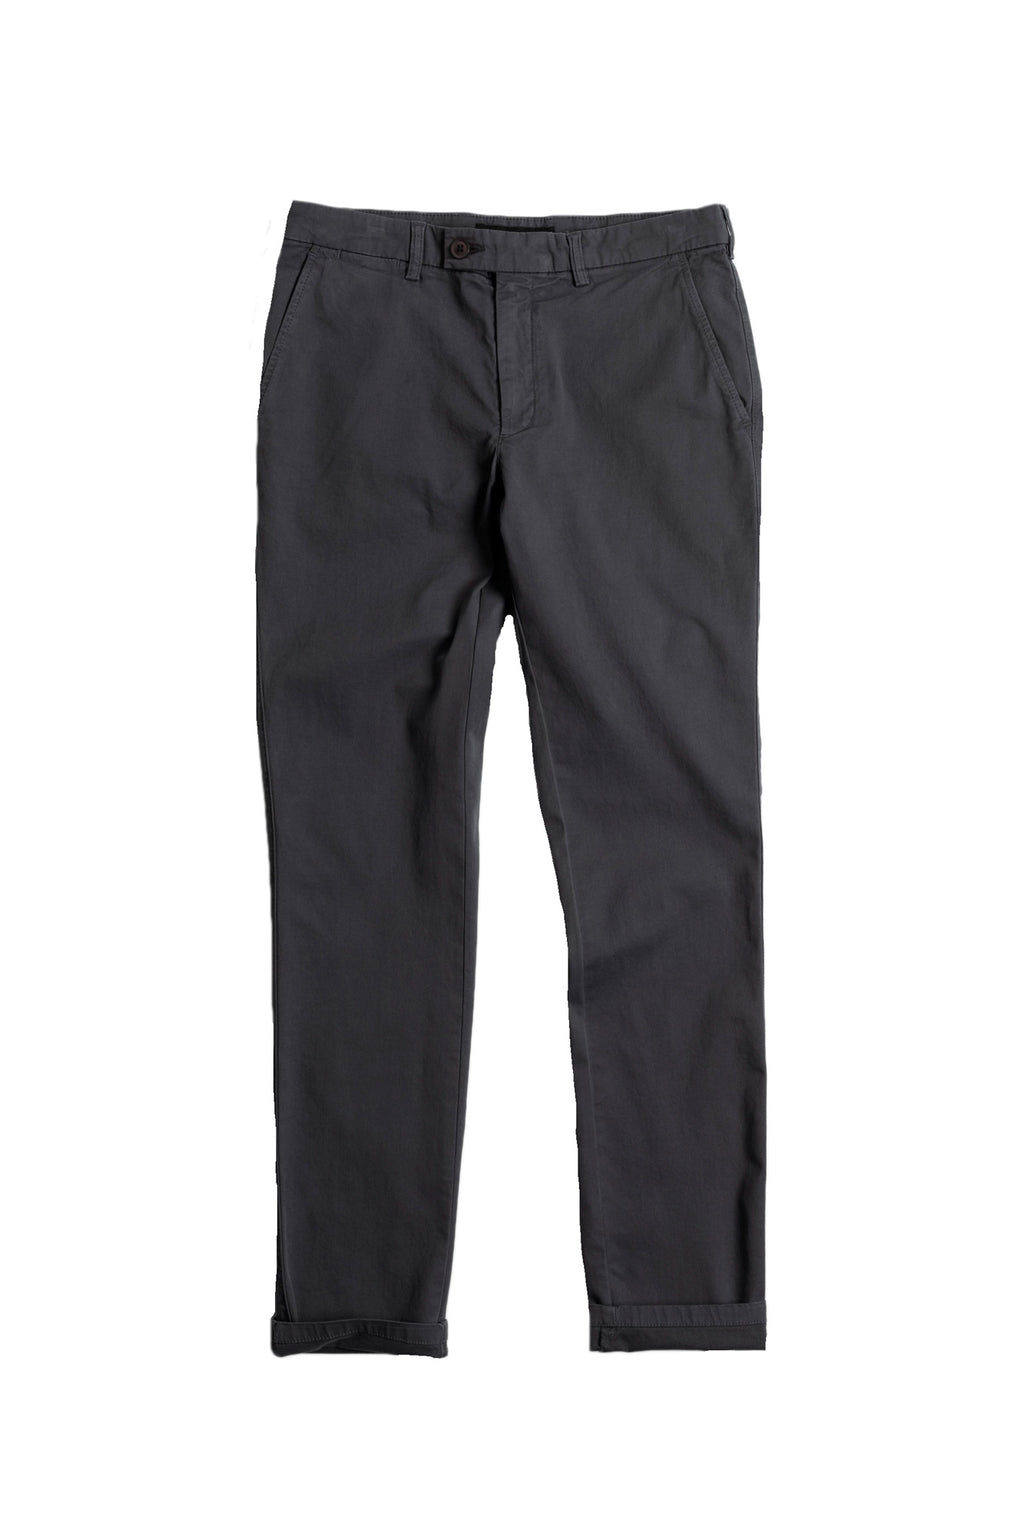 Stretch Chino in Onyx Front